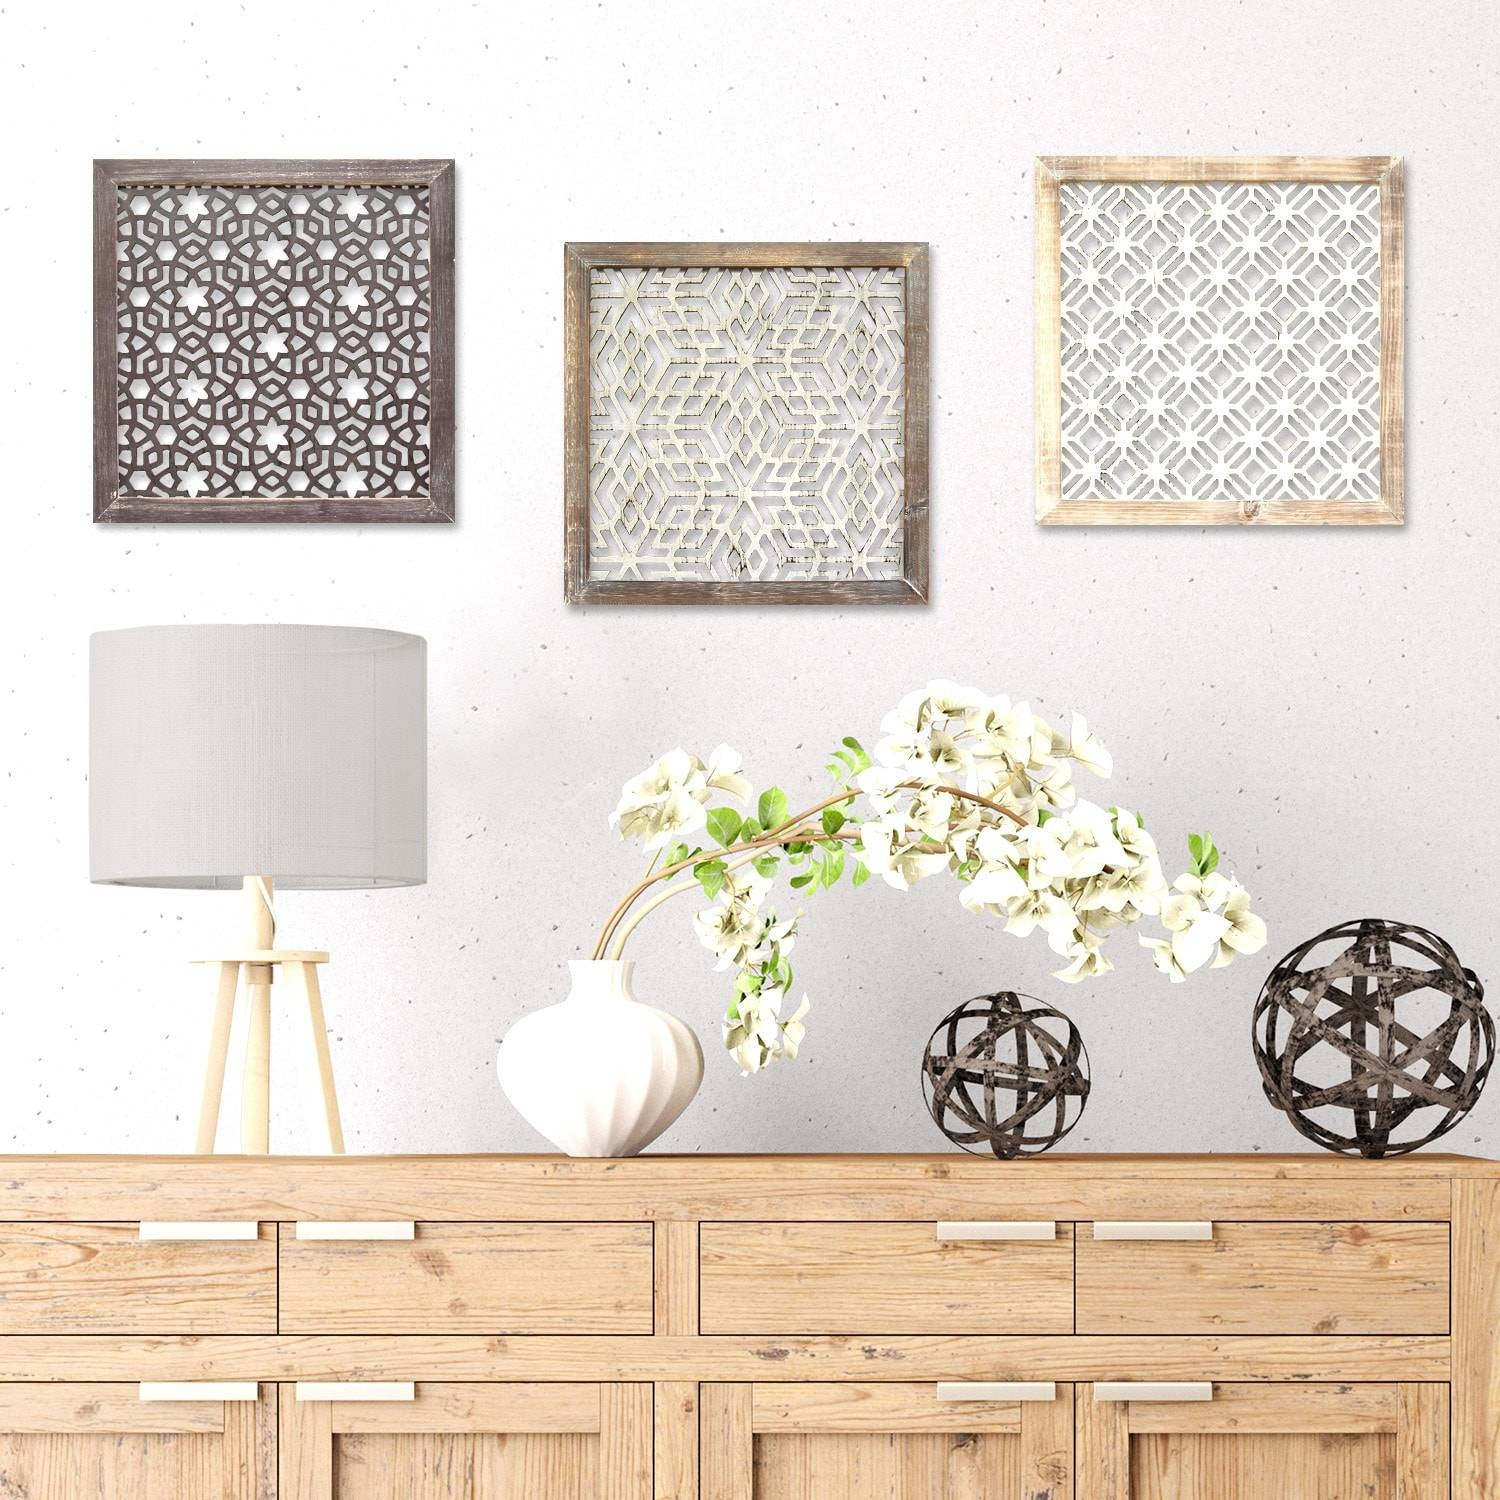 Stratton Home Decor Distressed Grey Wood Framed Laser Cut Metal Intended For Recent Distressed Metal Wall Art (View 5 of 20)